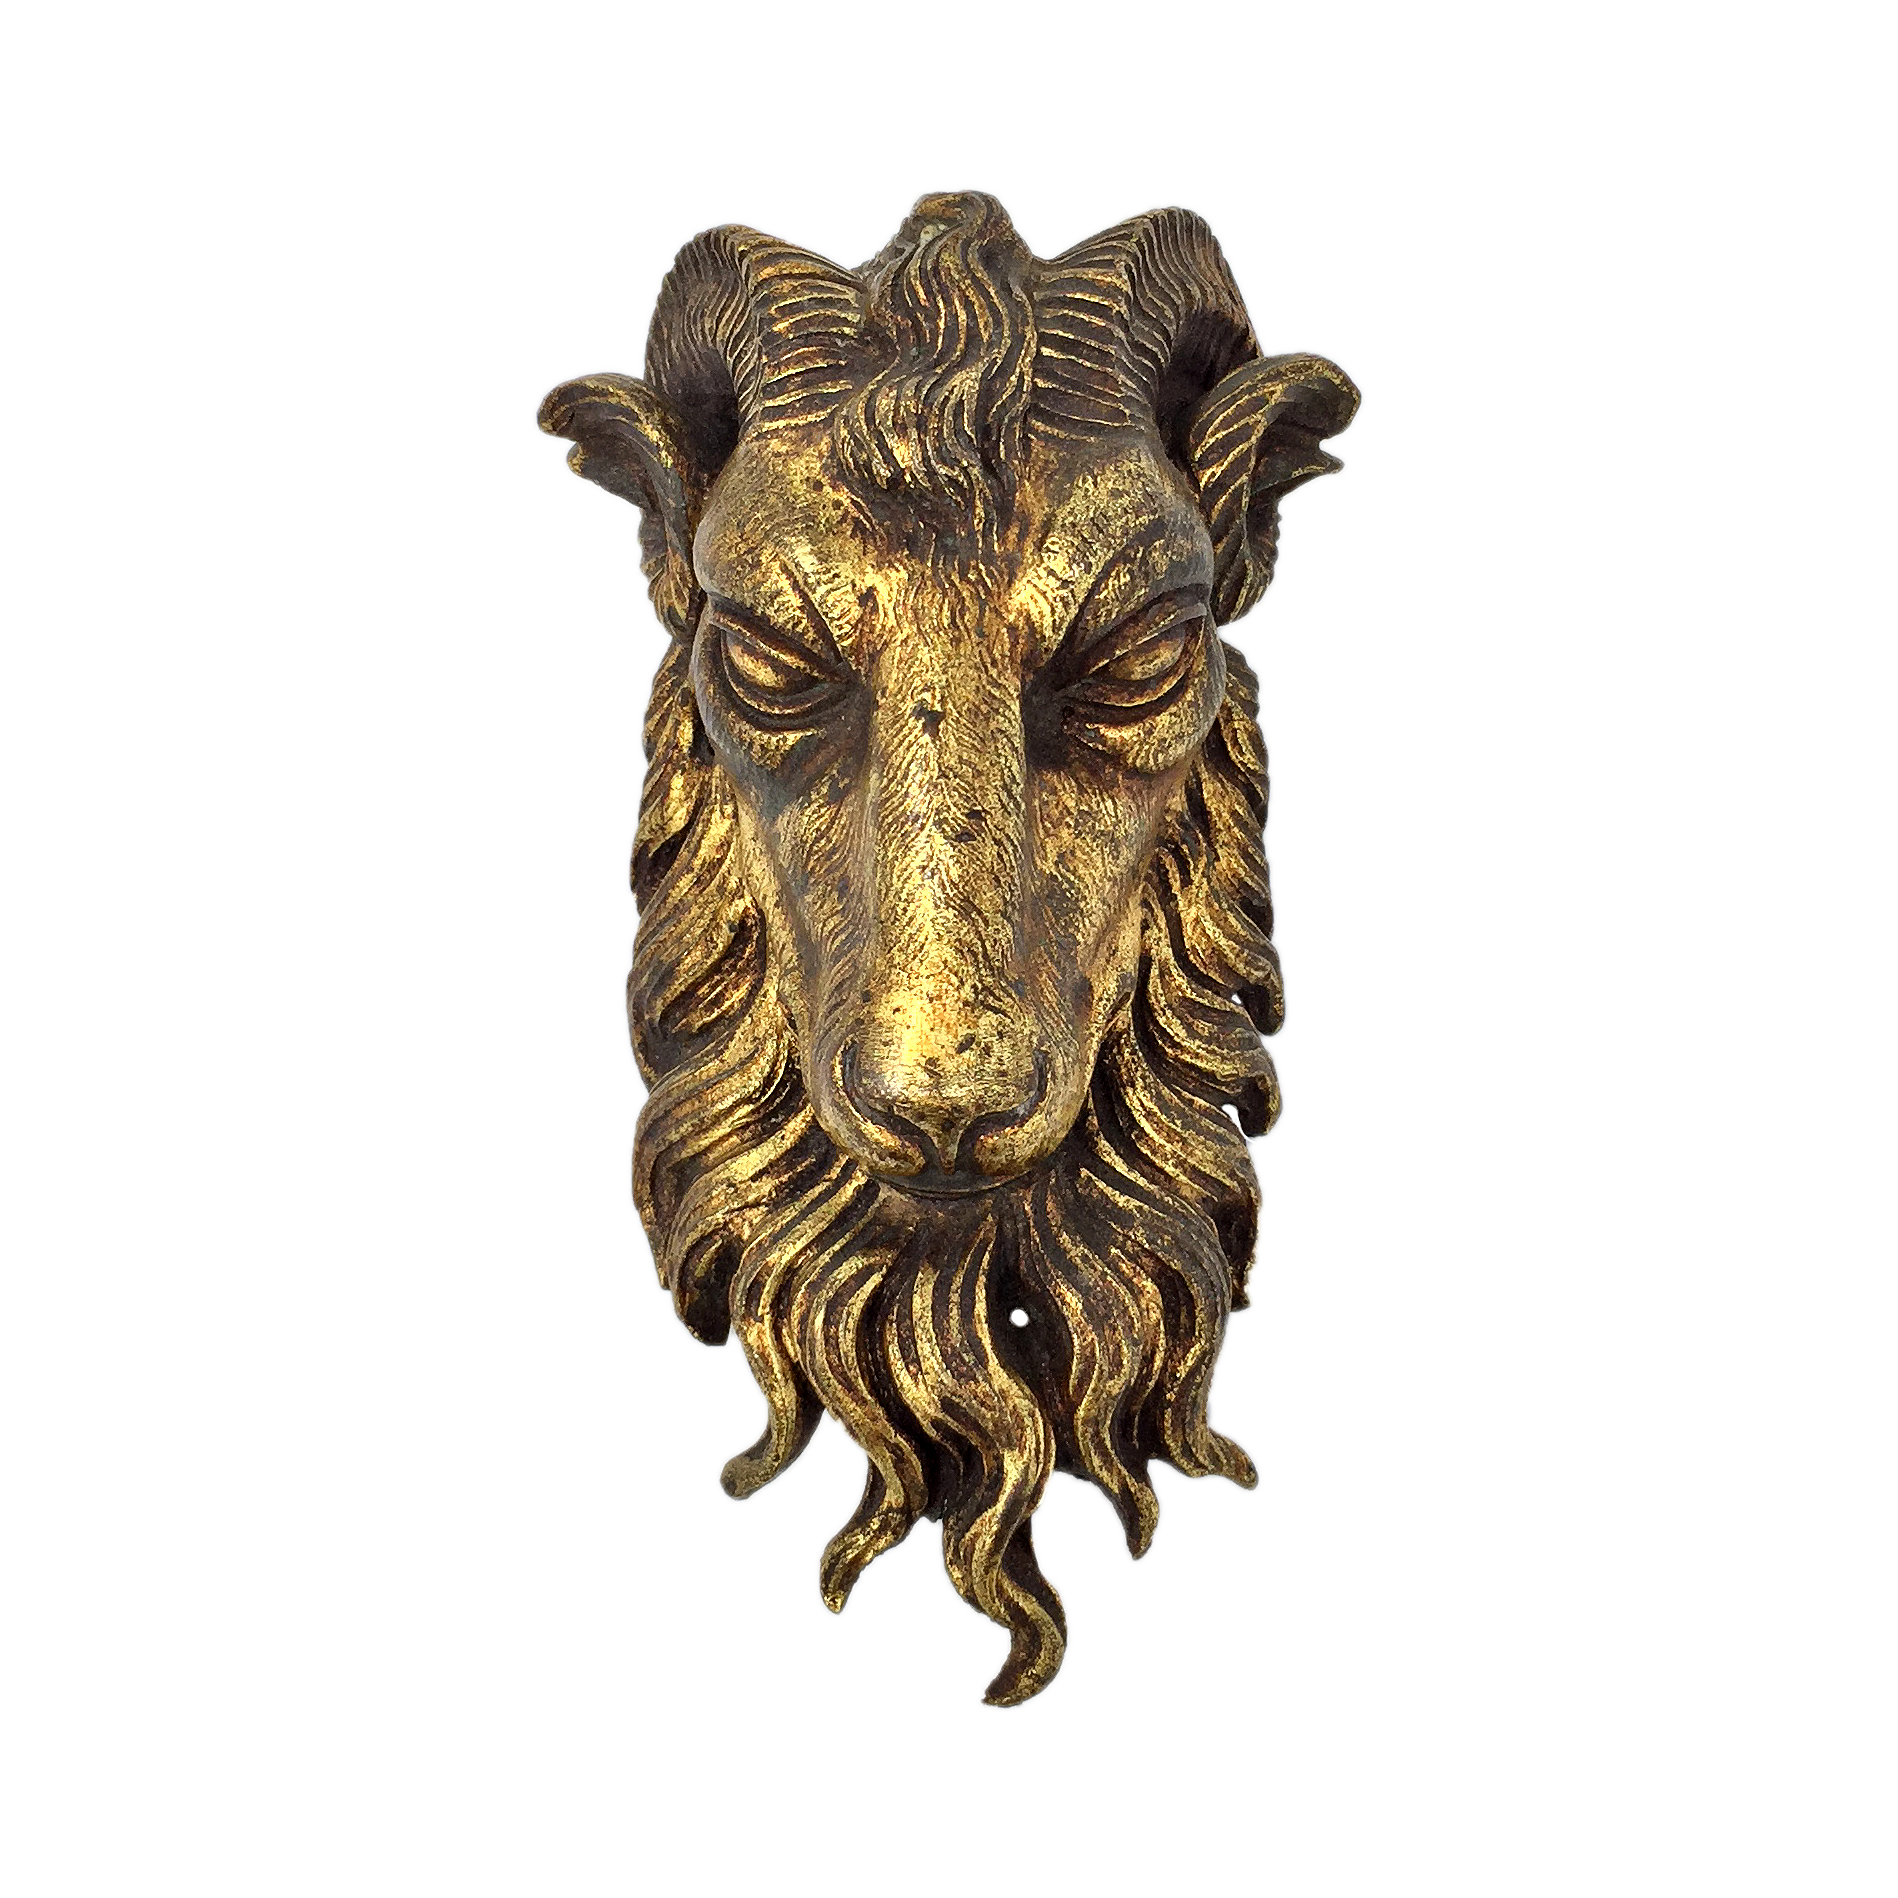 Antique gilt bronze ram's head circa 19th century, Baphomet idol